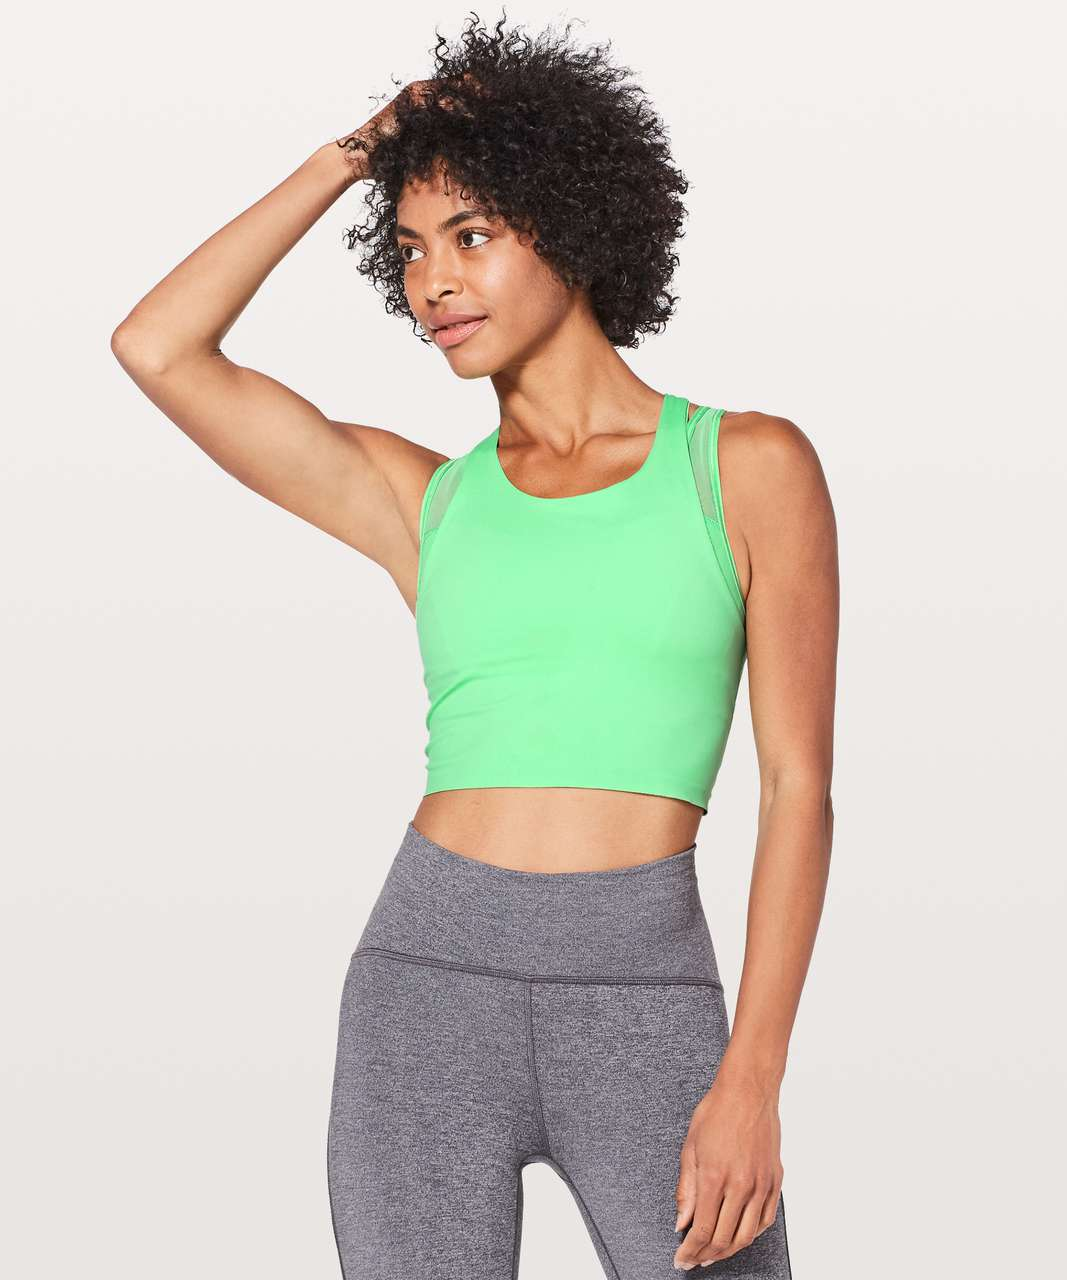 Lululemon Break Free Tank *Nulux Medium Support For B/C Cup - Dragonfly